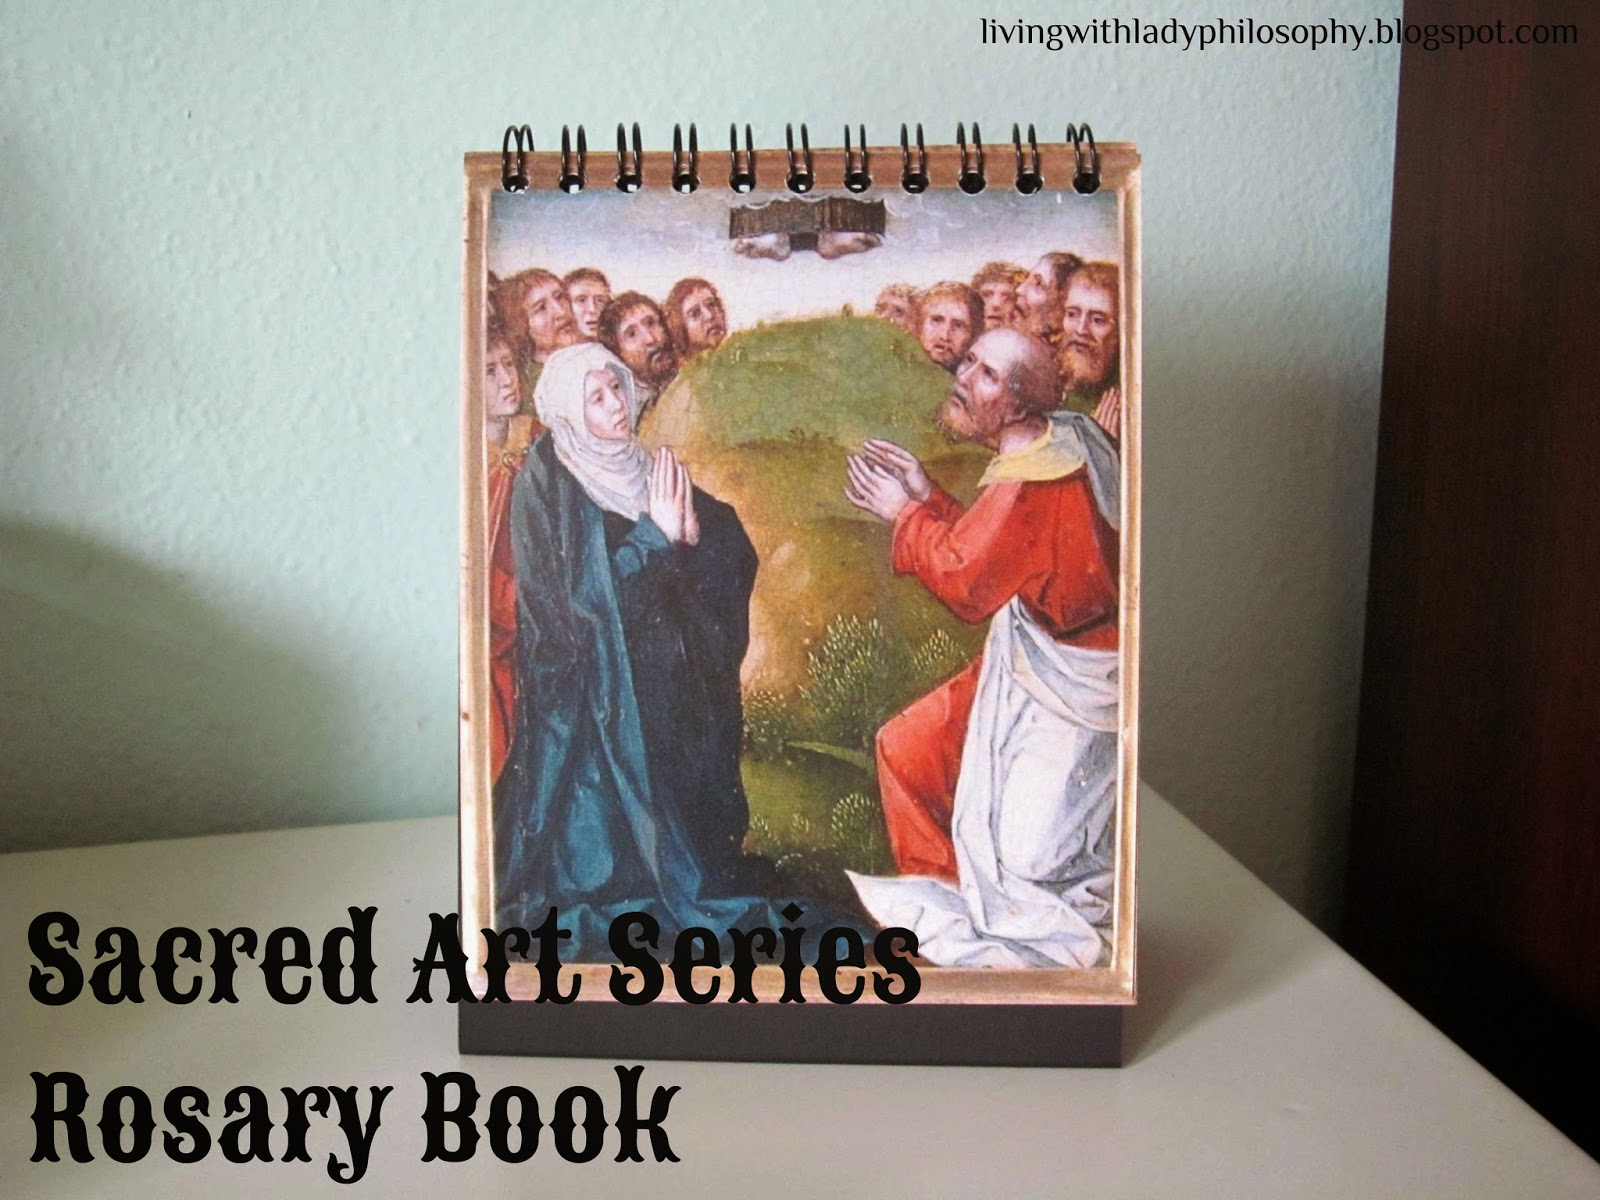 http://livingwithladyphilosophy.blogspot.com/2014/10/review-and-giveaway-sacred-art-series.html